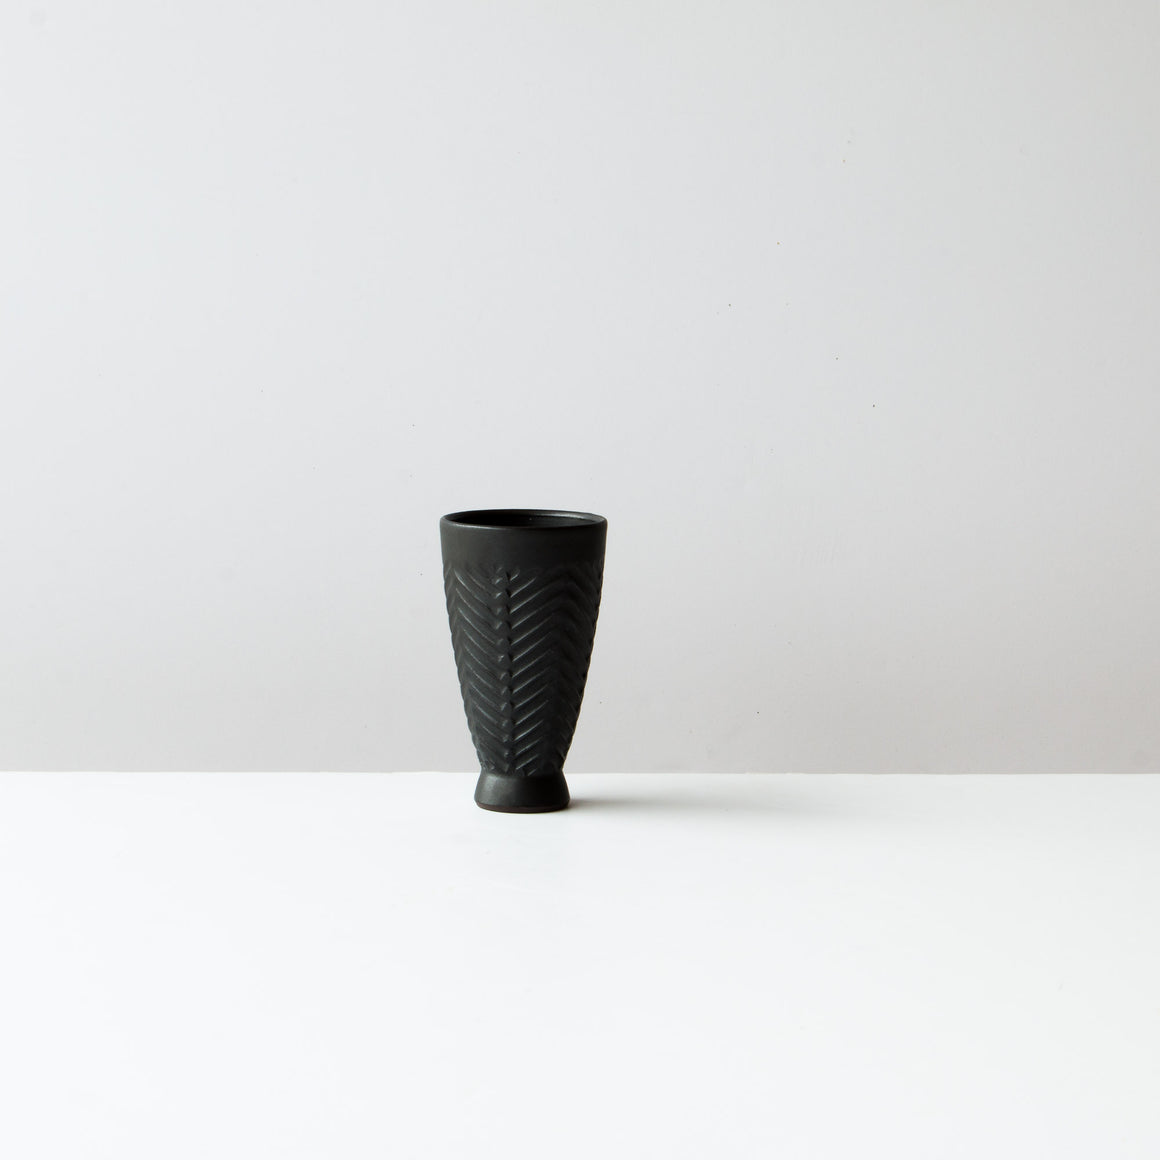 Side View - Greige Colour Handmade Ceramic Mazagran Coffee Cup / Goblet